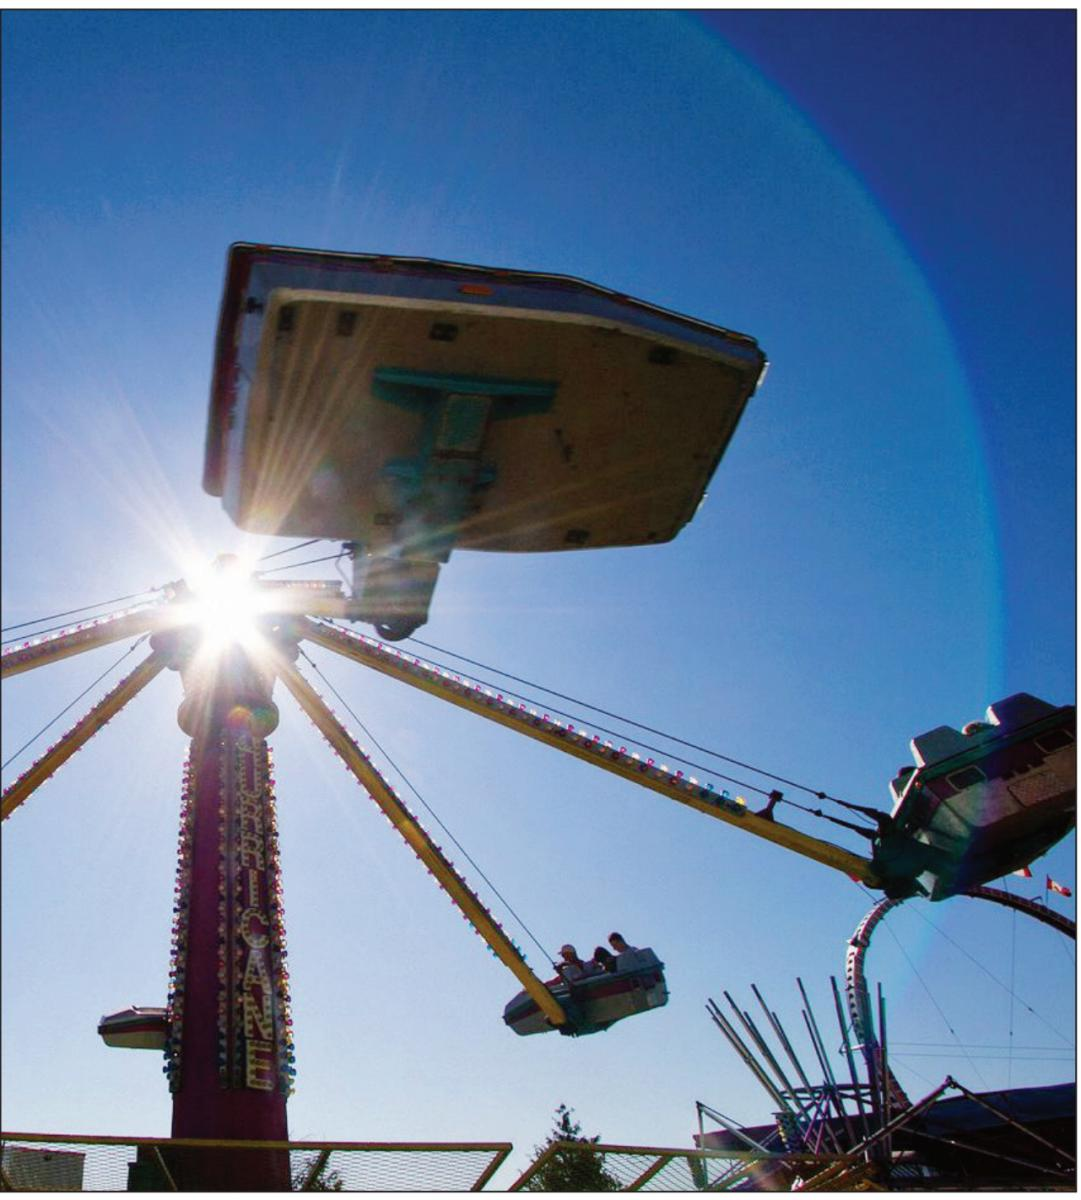 Thrill-seeking fairgoers try out the Hurricane ride at the 2011 Saanich Fair. The midway will be back this weekend.